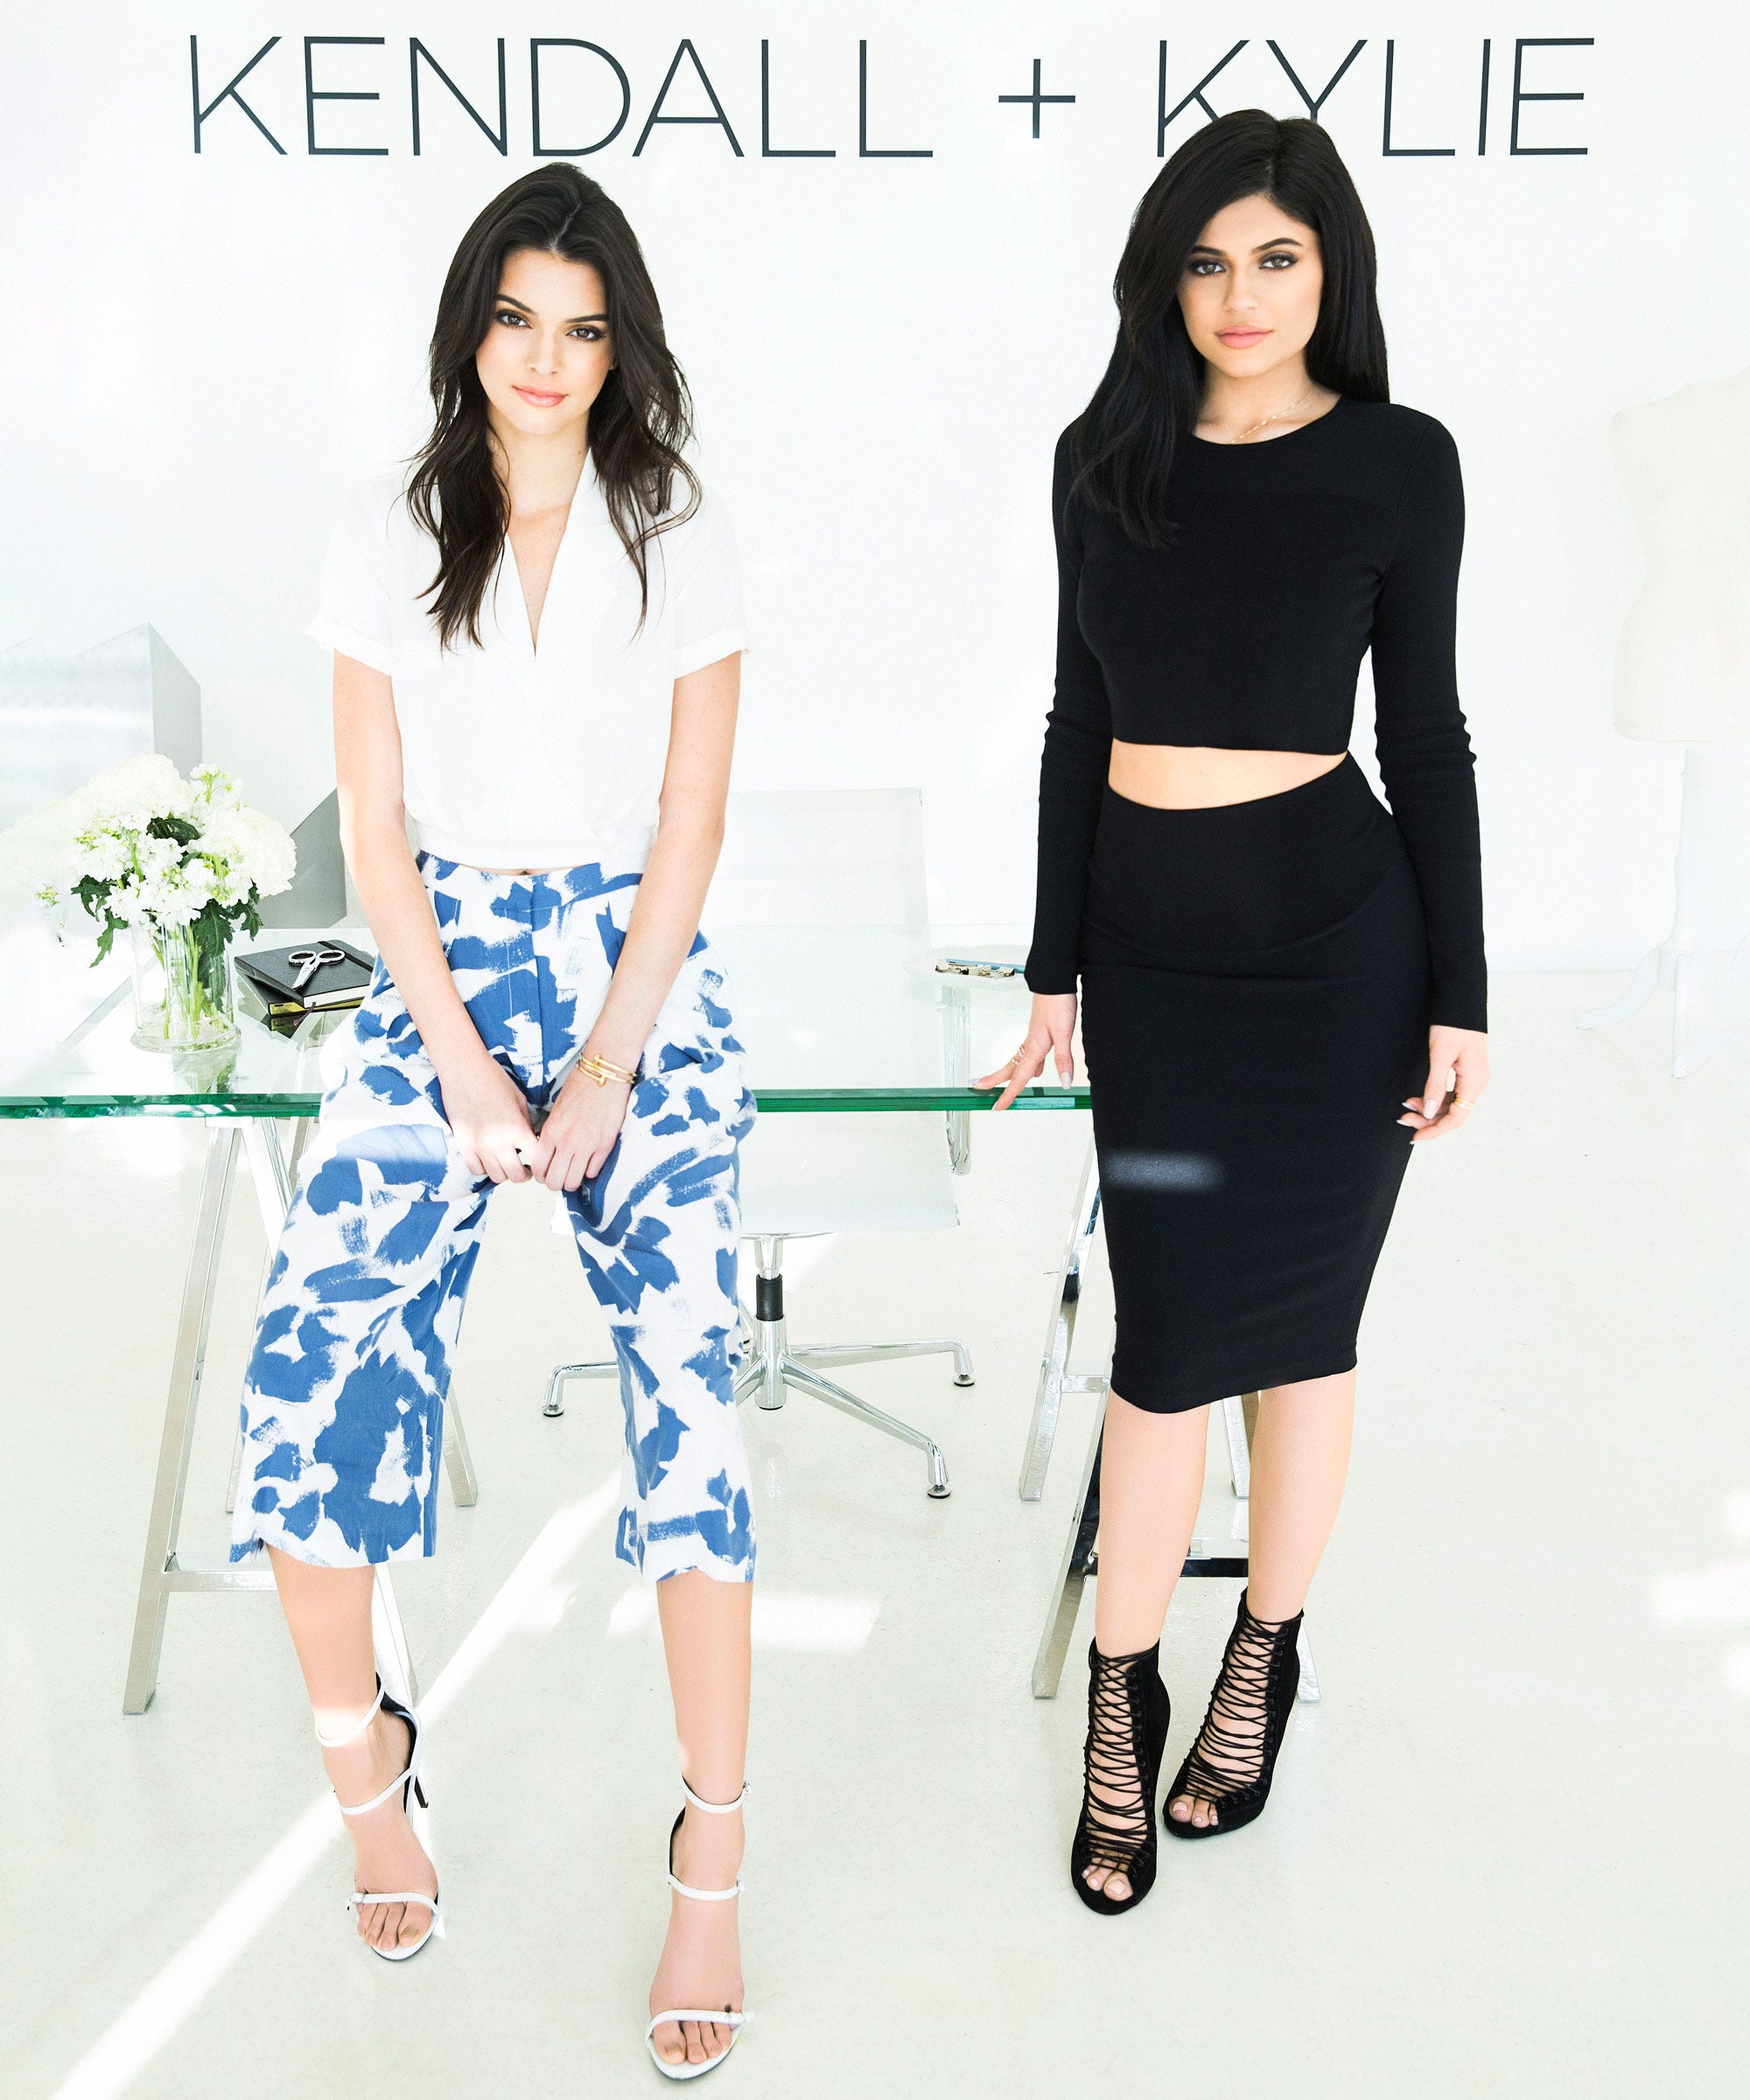 8c4612ddbc6 Your First Look At Kendall + Kylie s Debut Collection